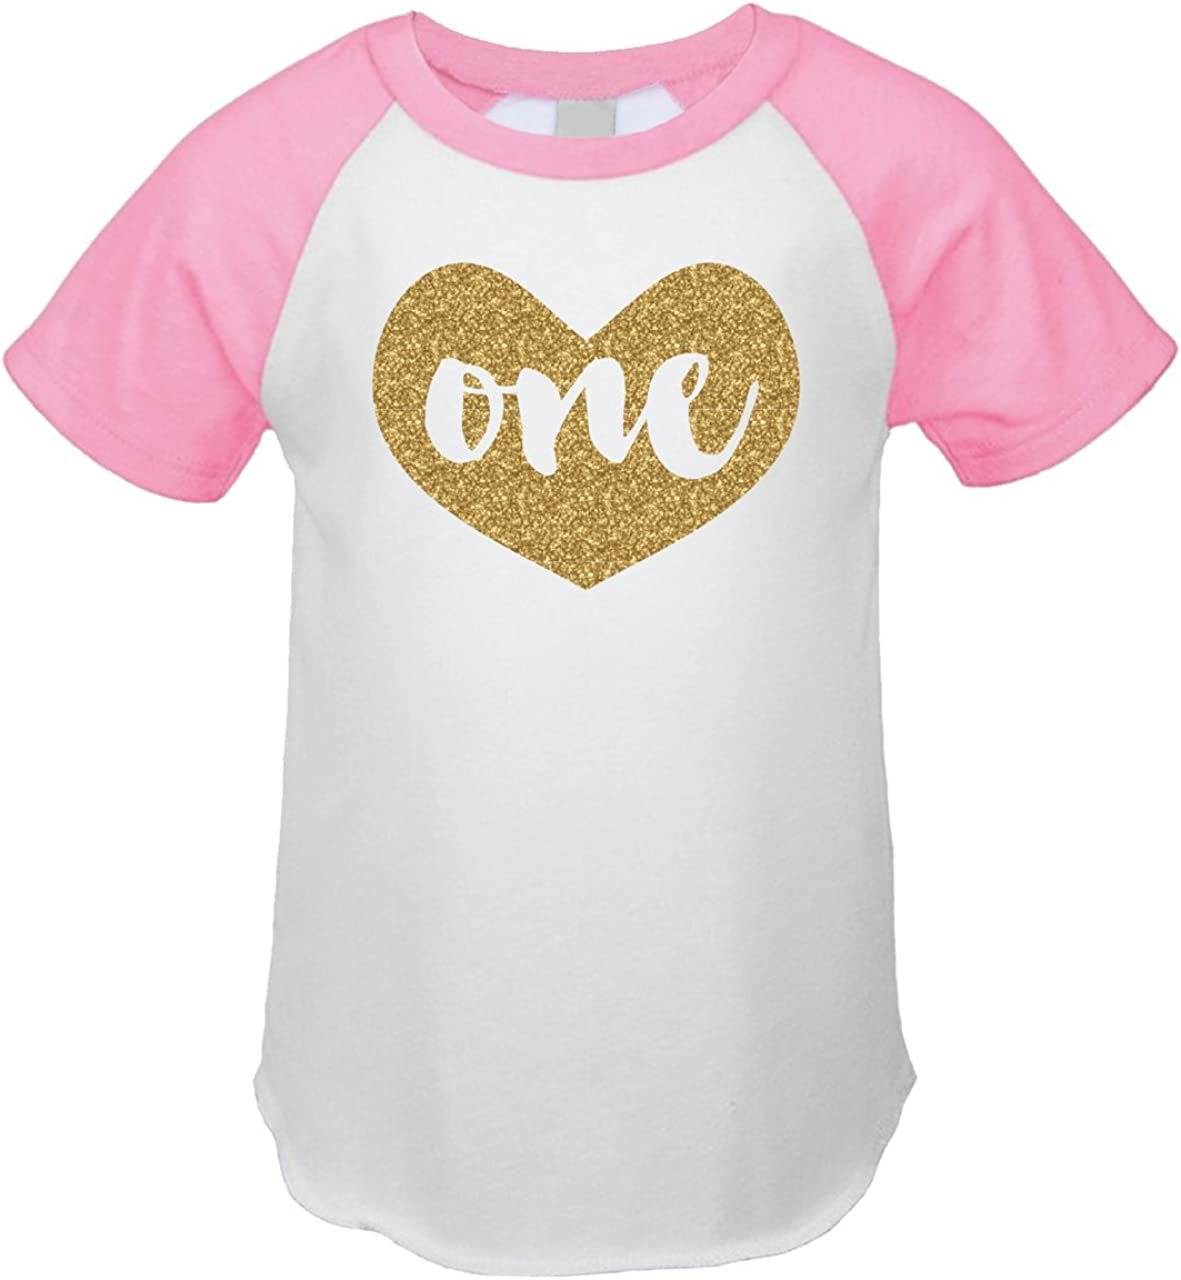 First Birthday Outfit Girl One Year Old Girl Birthday T-Shirt 61tMTJwhlOL